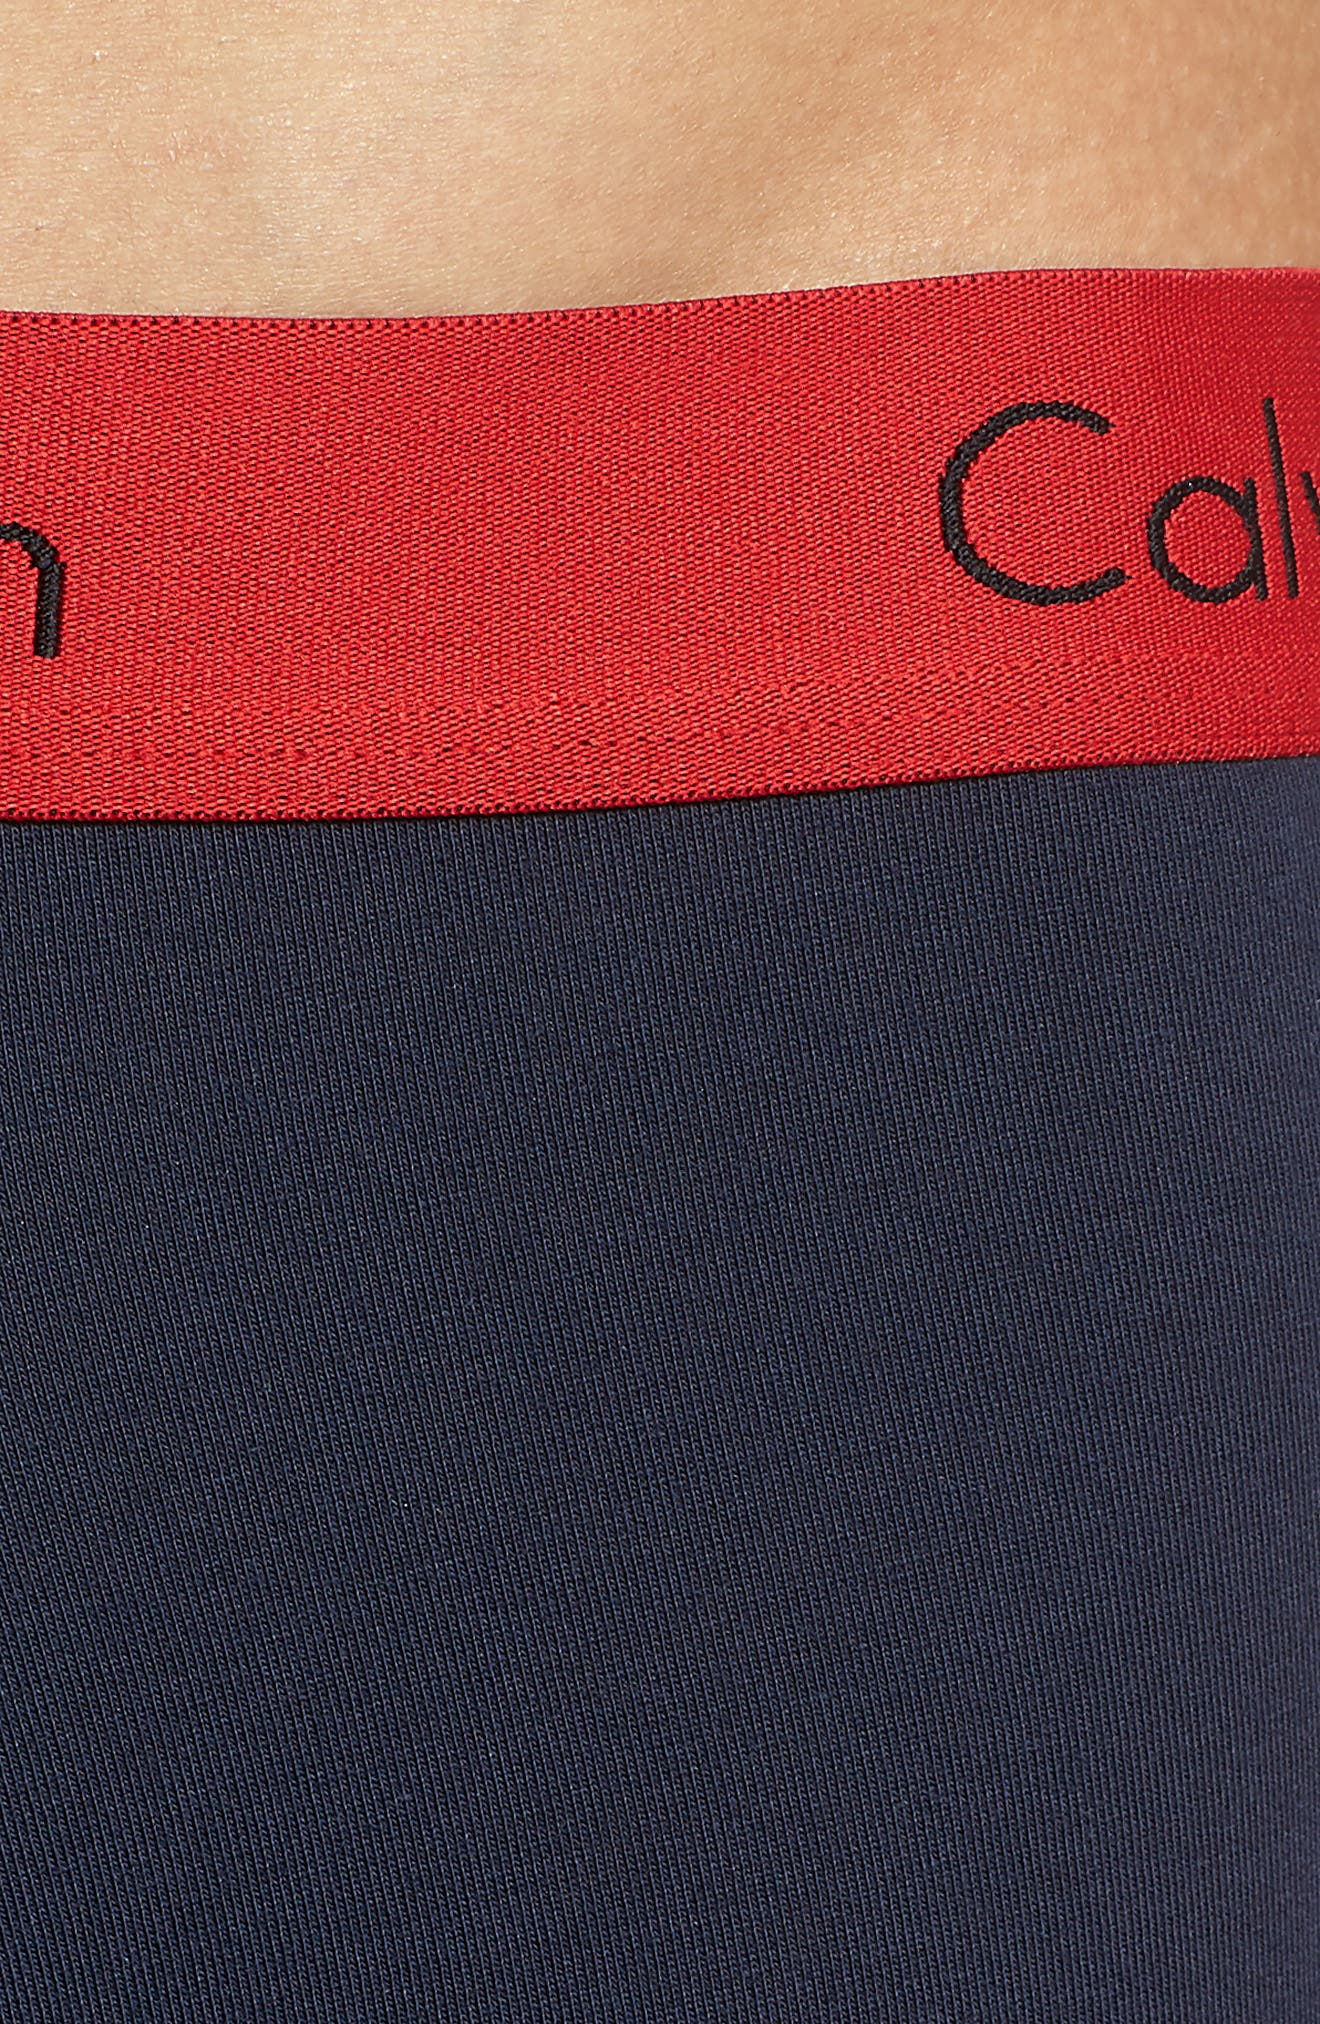 3-Pack Boxer Briefs,                             Alternate thumbnail 5, color,                             BLACK/ GREY/ BLUE/ RED BAND